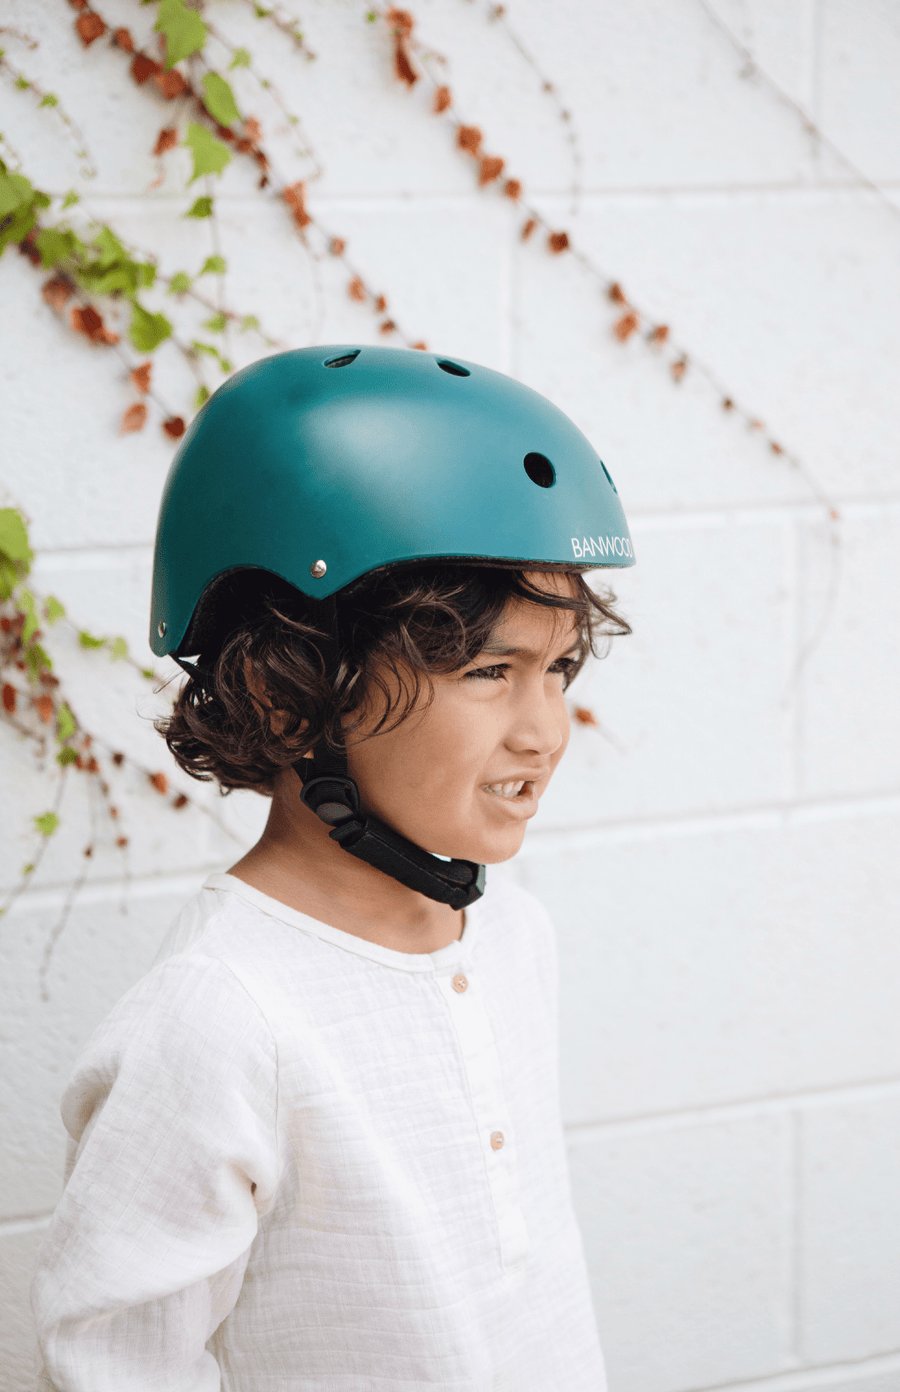 Banwood Bicycle Helmet - Racing Green